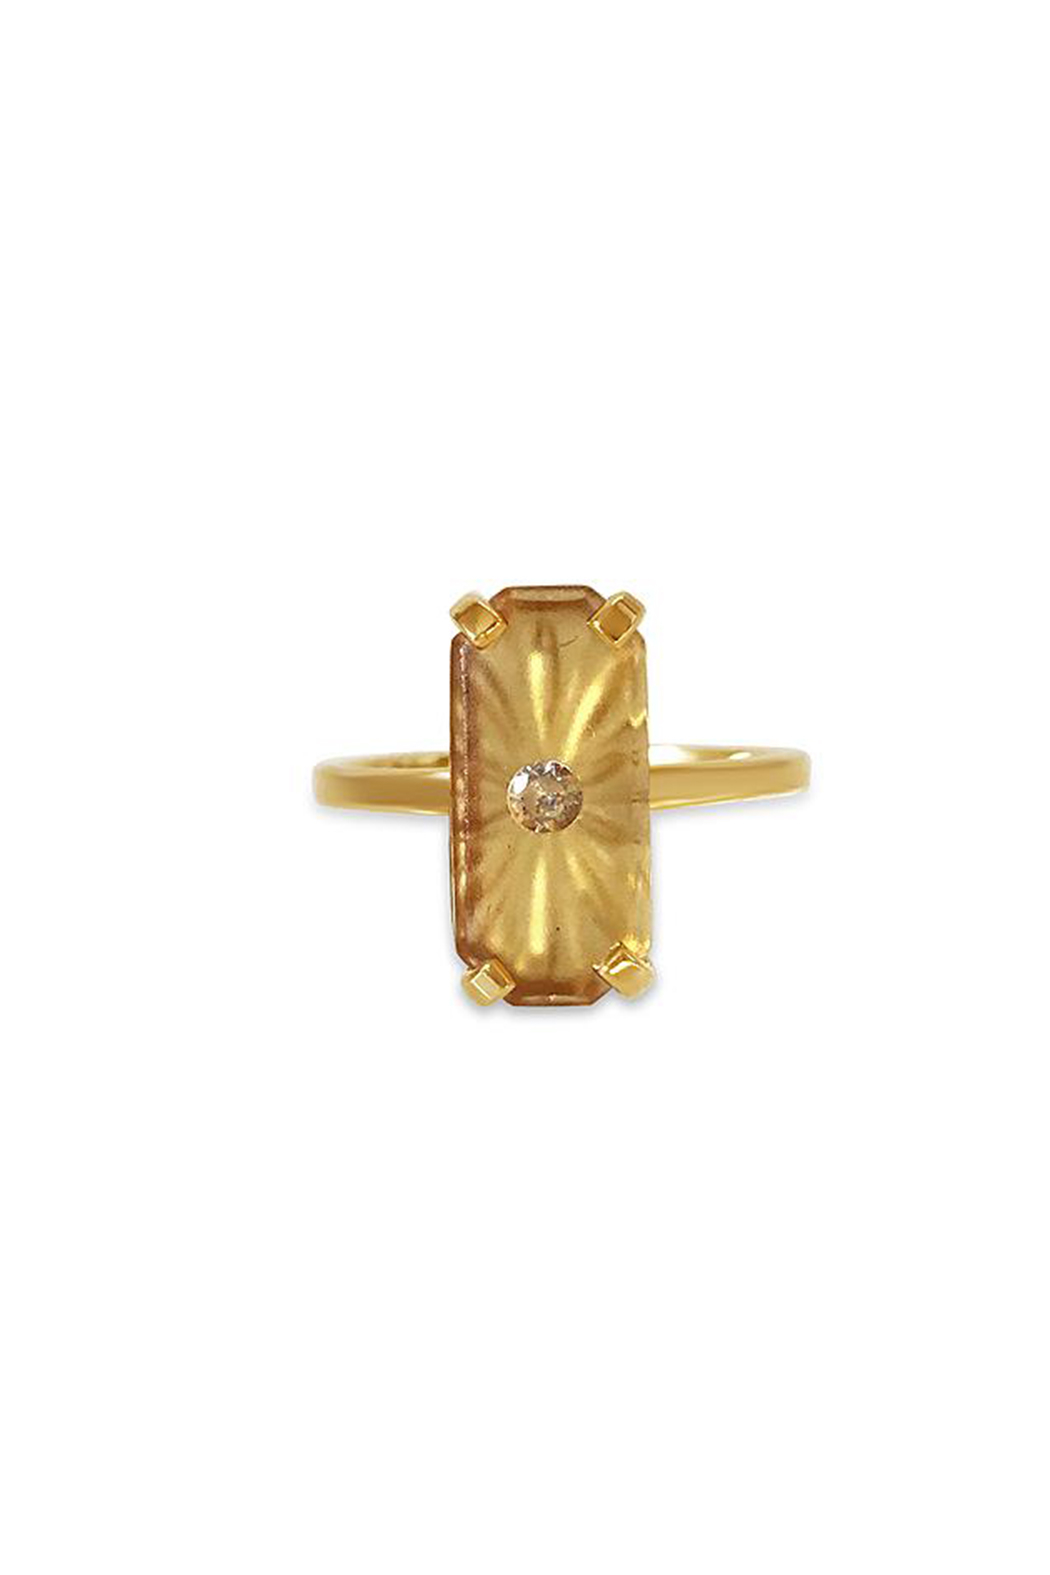 Erin Fader Jewelry Day Dreamer Studded Topaz Ring - Main Image